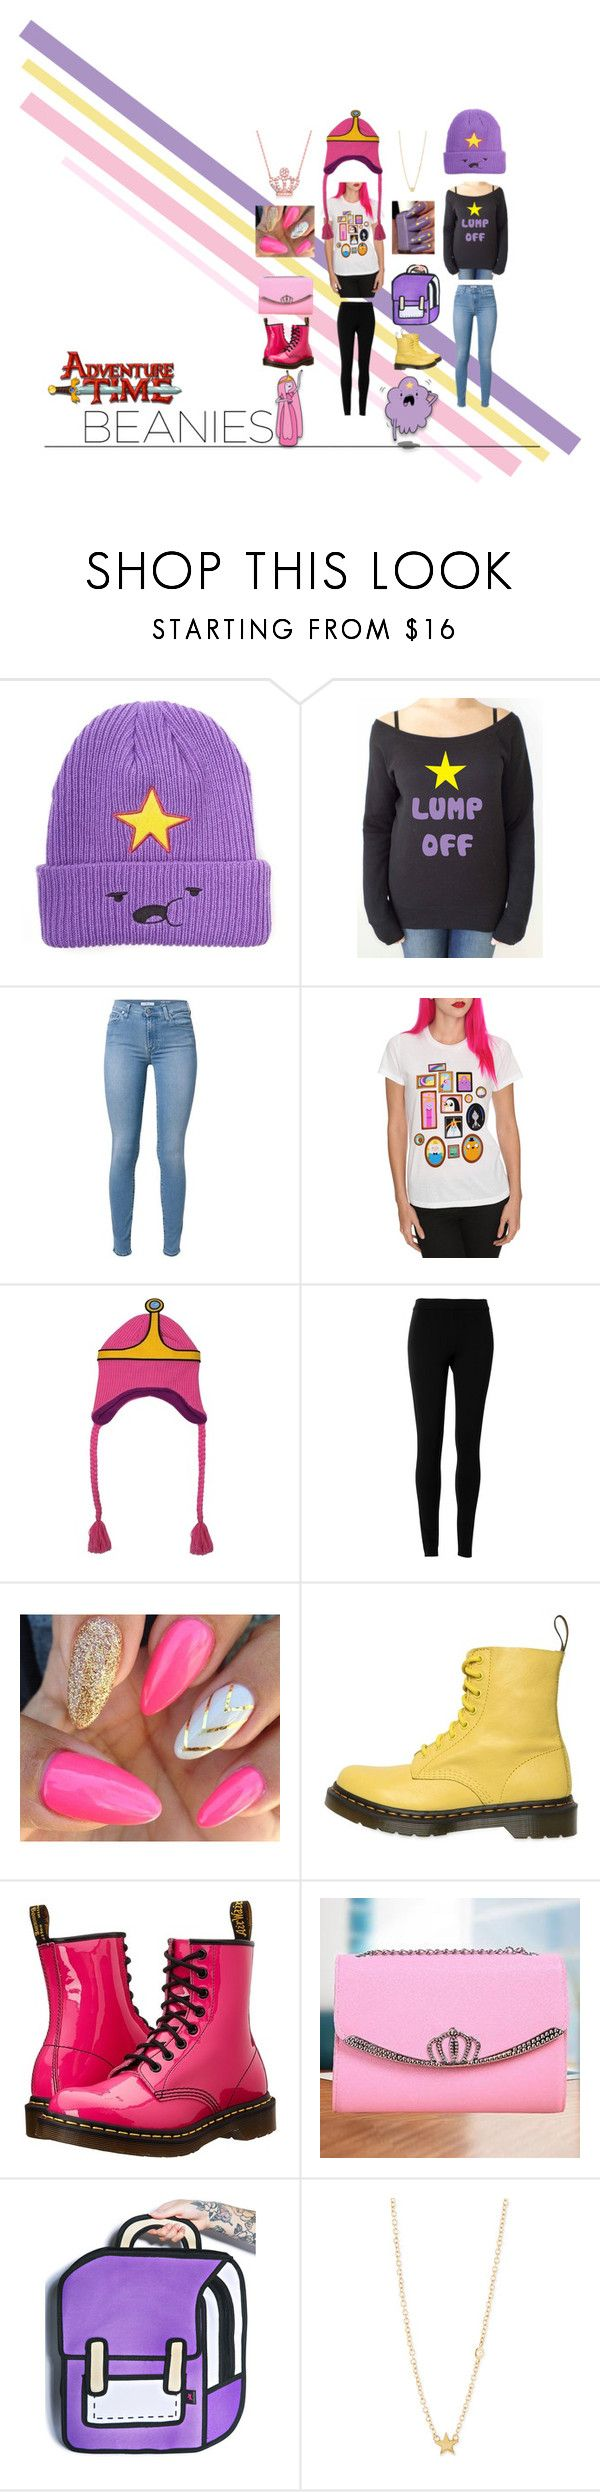 """Hat Head: Beanies (Adventure Time)"" by cheung-fashion ❤ liked on Polyvore featuring Max Studio, Dr. Martens, Talega and Sydney Evan"